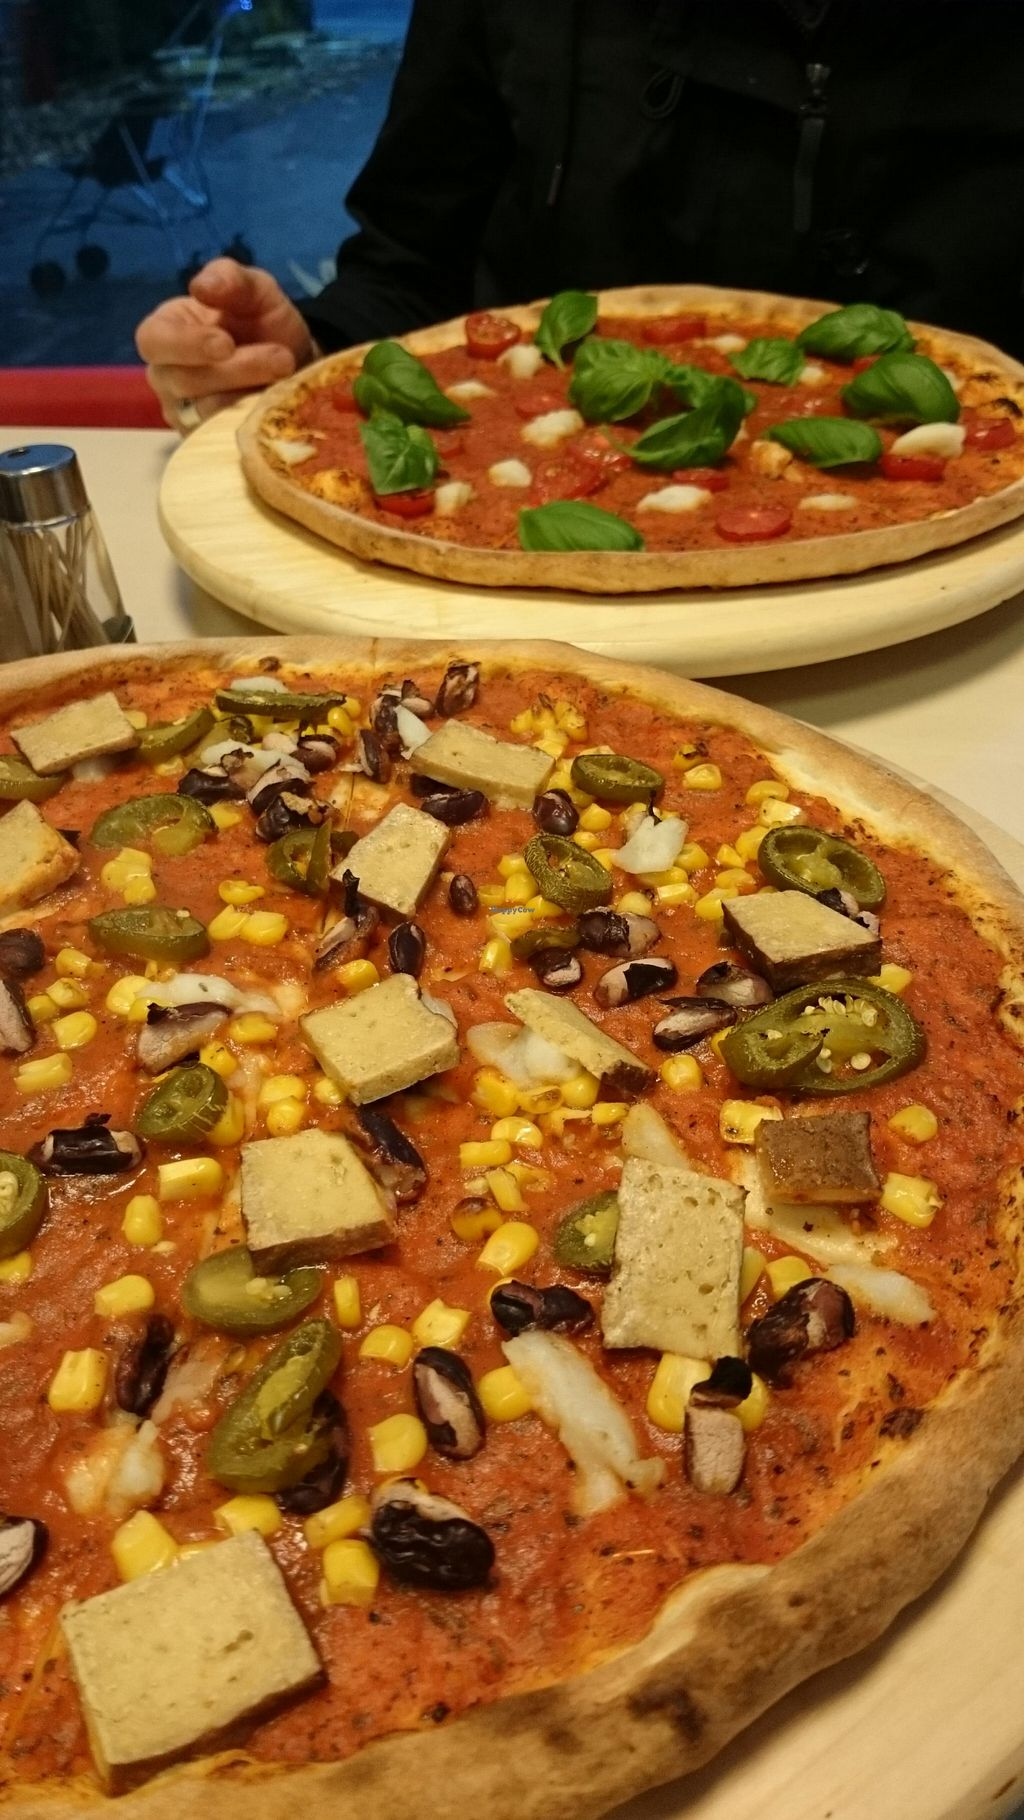 """Photo of Pizza Hell  by <a href=""""/members/profile/lenaknp"""">lenaknp</a> <br/>the vegan options <br/> November 15, 2015  - <a href='/contact/abuse/image/58645/125080'>Report</a>"""